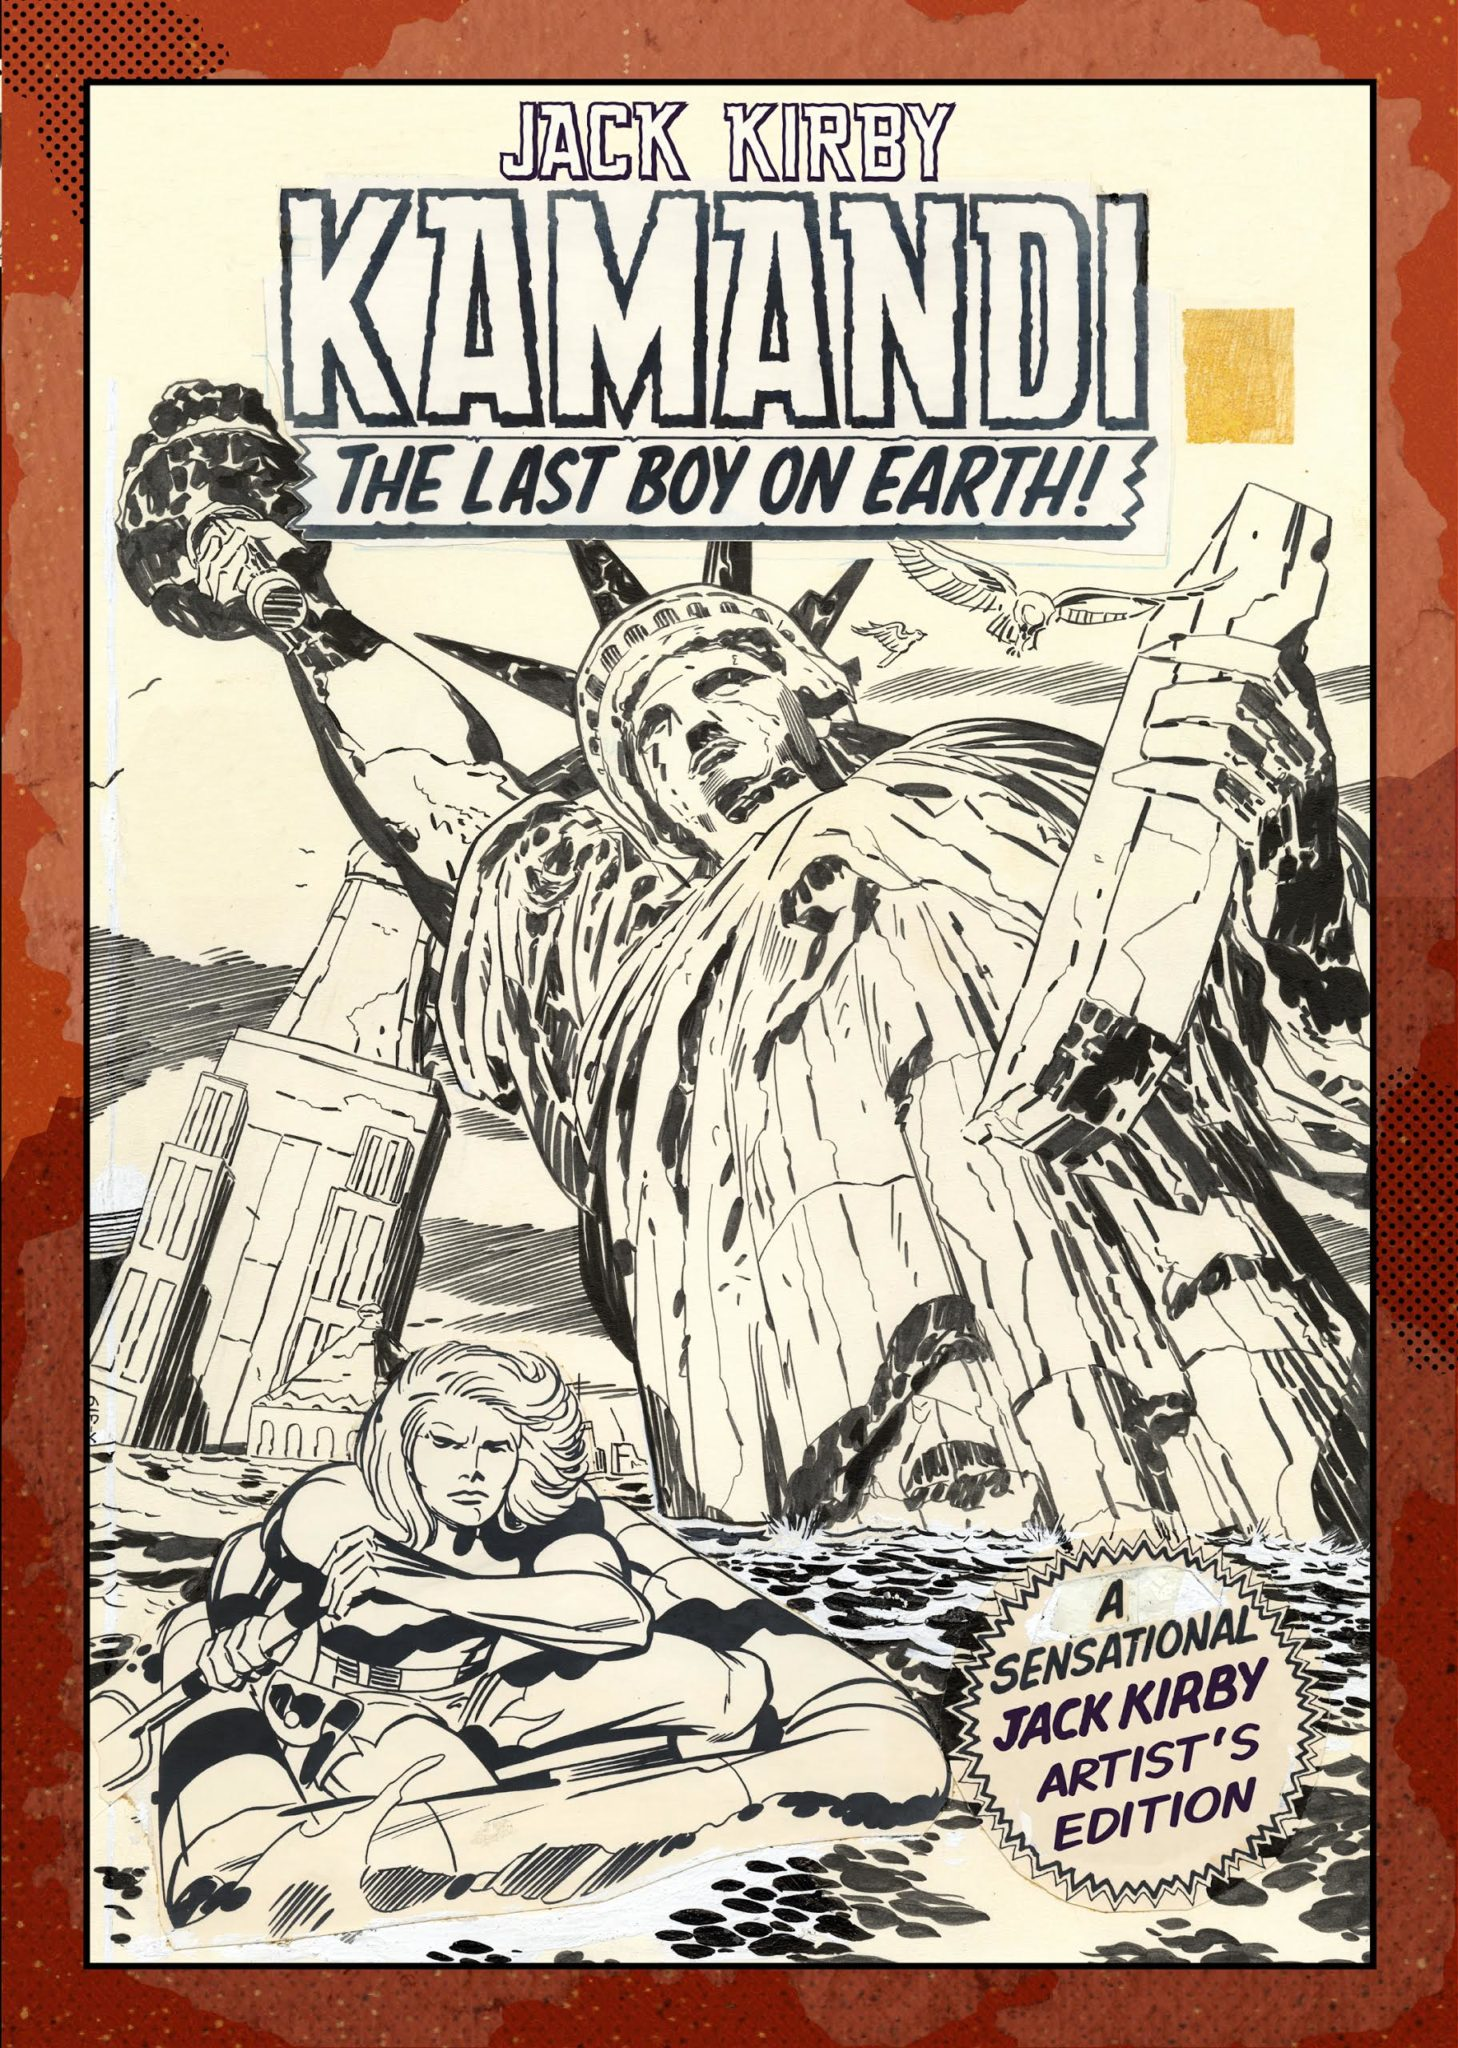 Review | Jack Kirby Kamandi The Last Boy On Earth Artist's Edition Vol 1